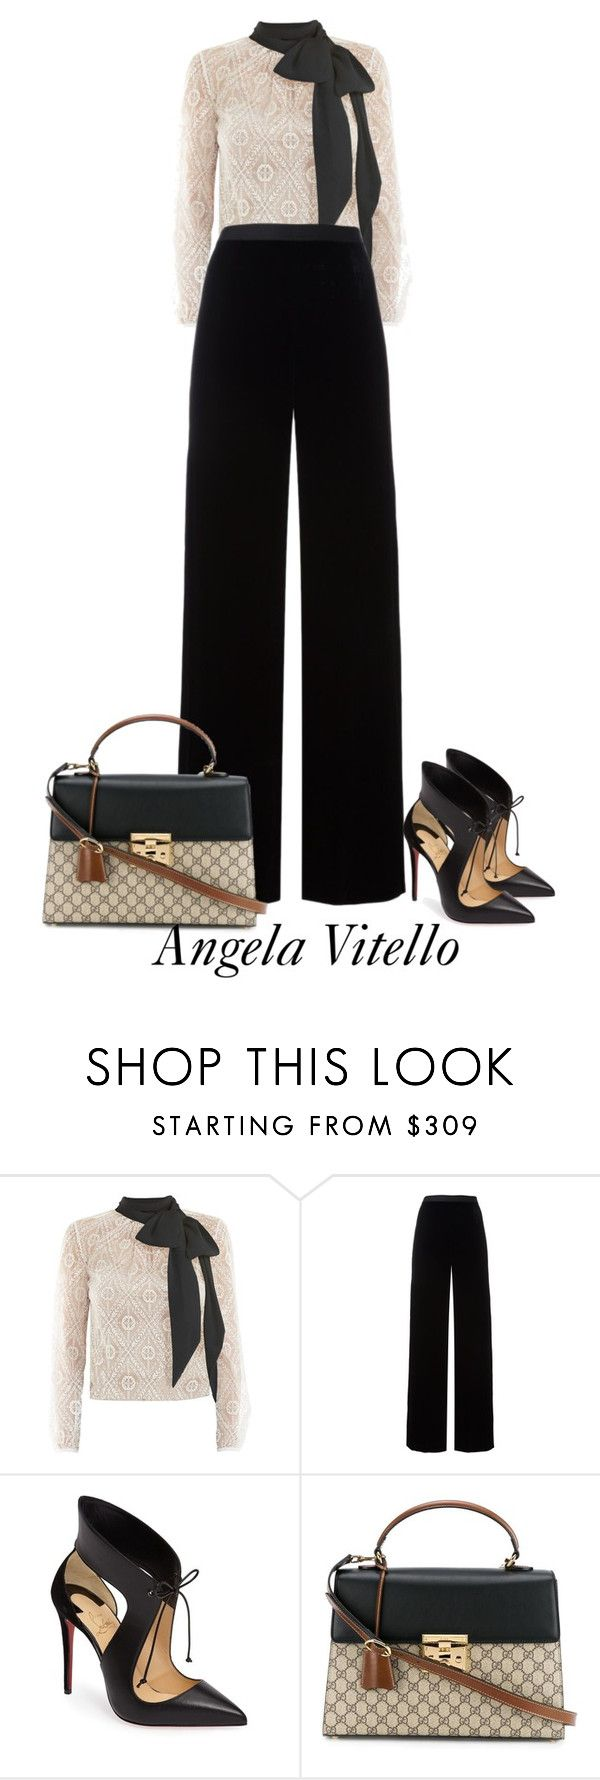 """Untitled #877"" by angela-vitello on Polyvore featuring Victor Xenia, T By Alexander Wang, Christian Louboutin and Gucci"